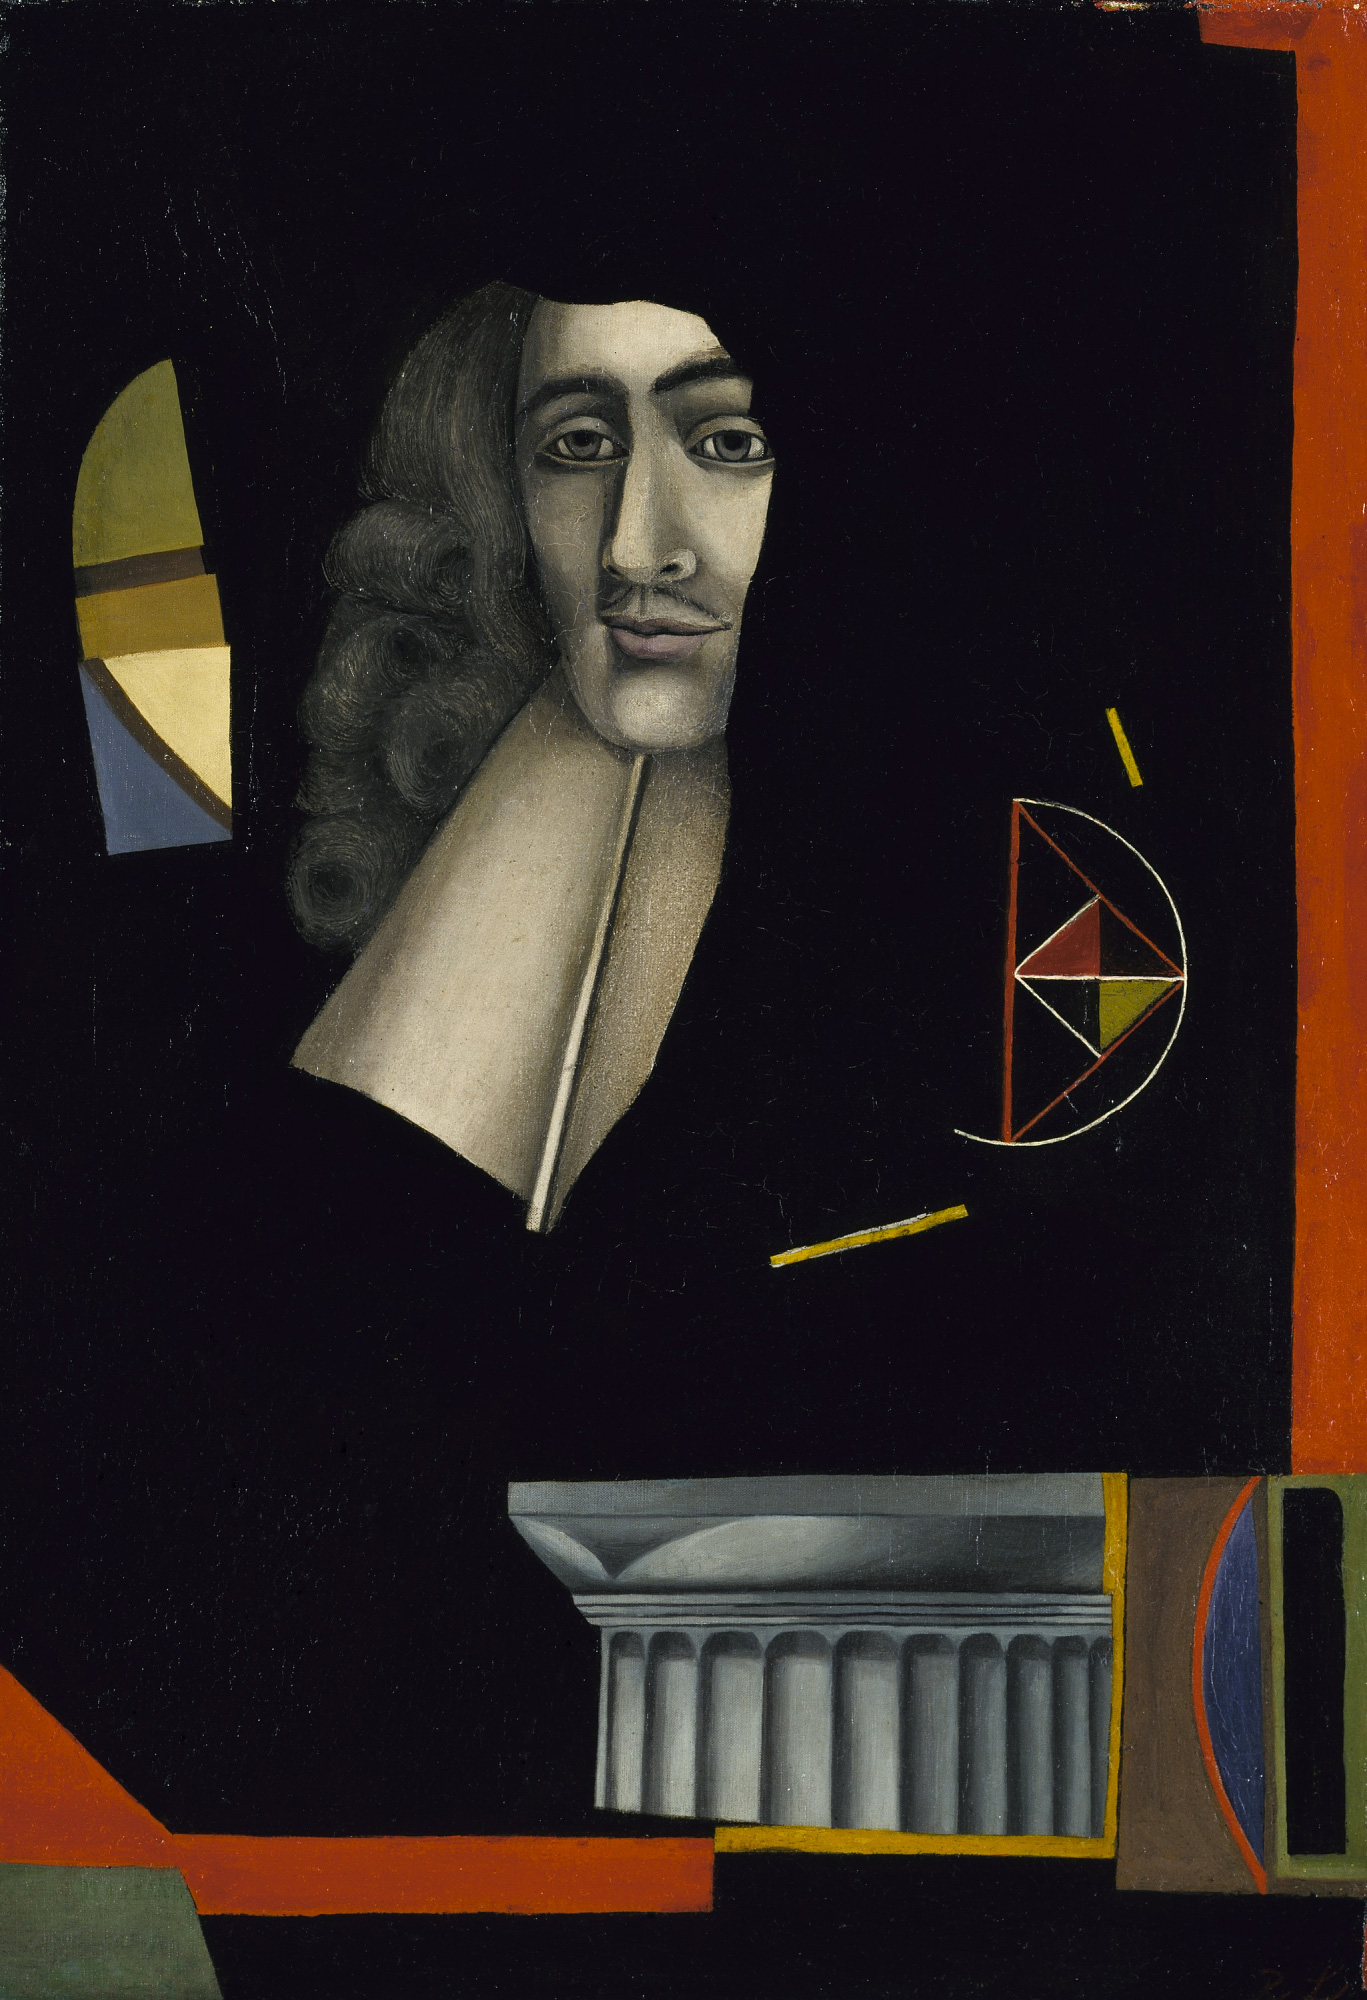 Benedict Spinoza, Ethics, 1677, 1956 grand format